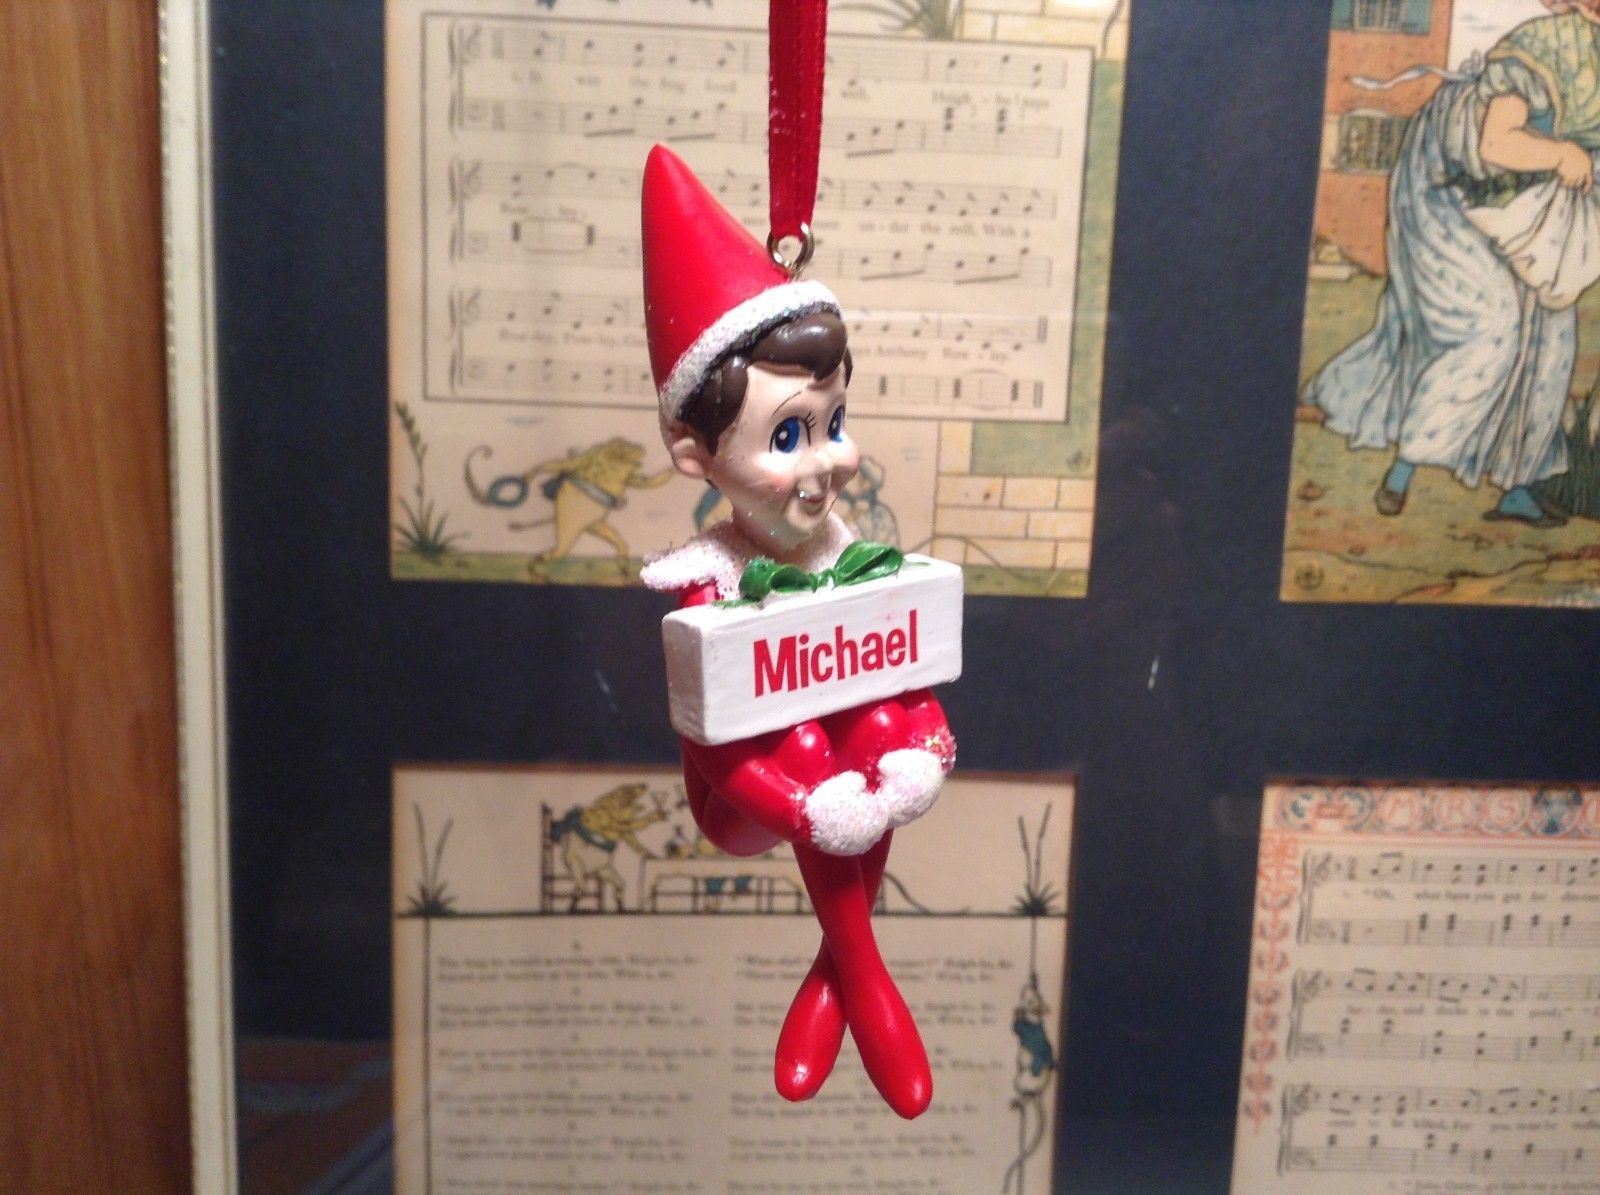 Dept 56 - Elf on the Shelf - Elf named Michael Christmas Ornament